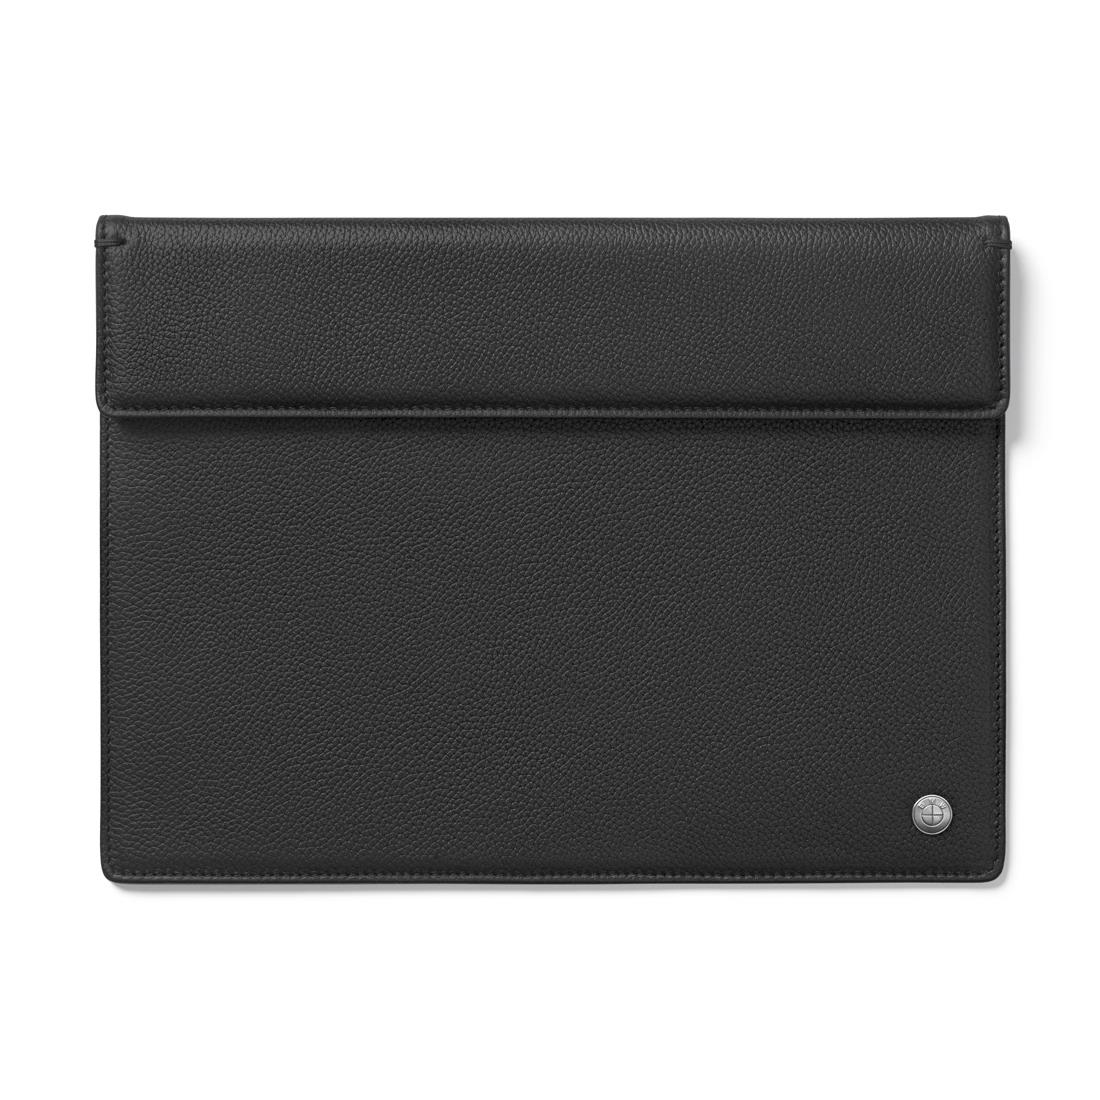 BMW Tablet Sleeve Universal